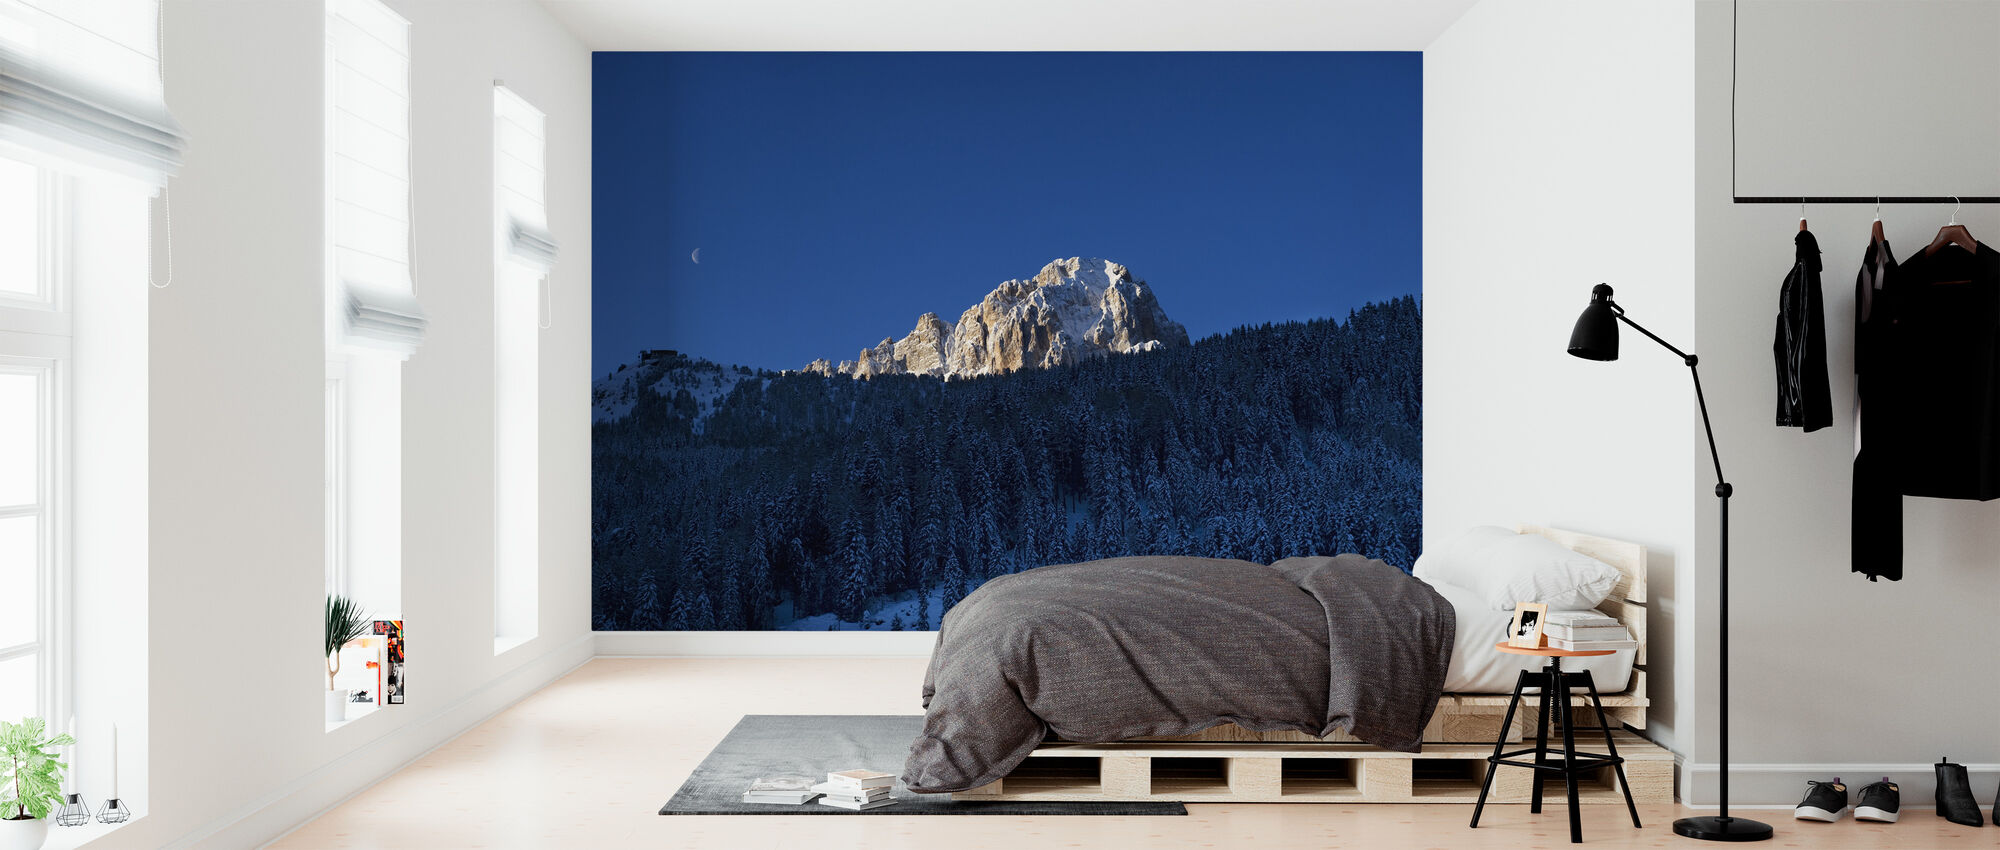 Val Gardena, Dolomites in Italy - Wallpaper - Bedroom